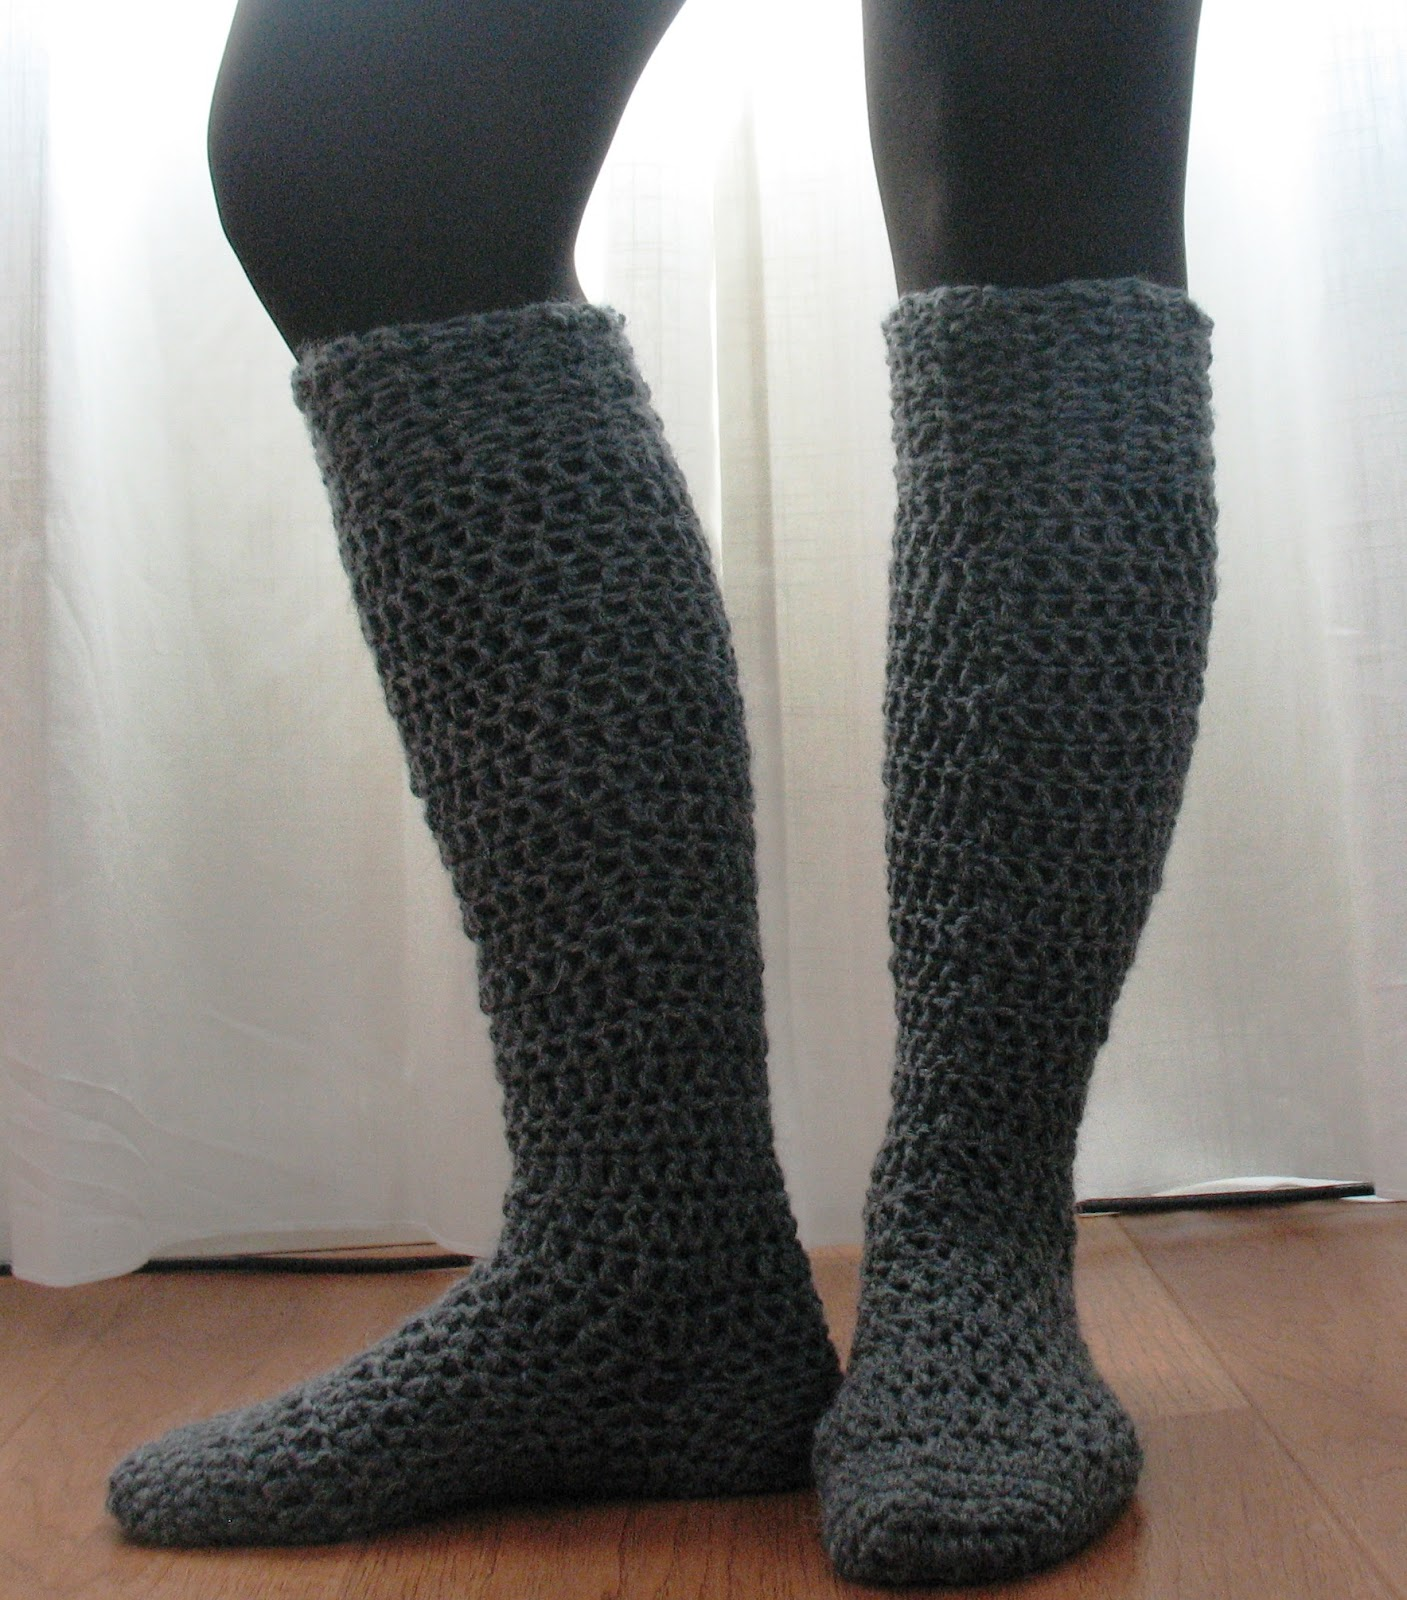 Top 10 free crochet and knit patterns for knee socks top 10 free crochet and knit patterns for knee socks that will keep you warm this bankloansurffo Gallery